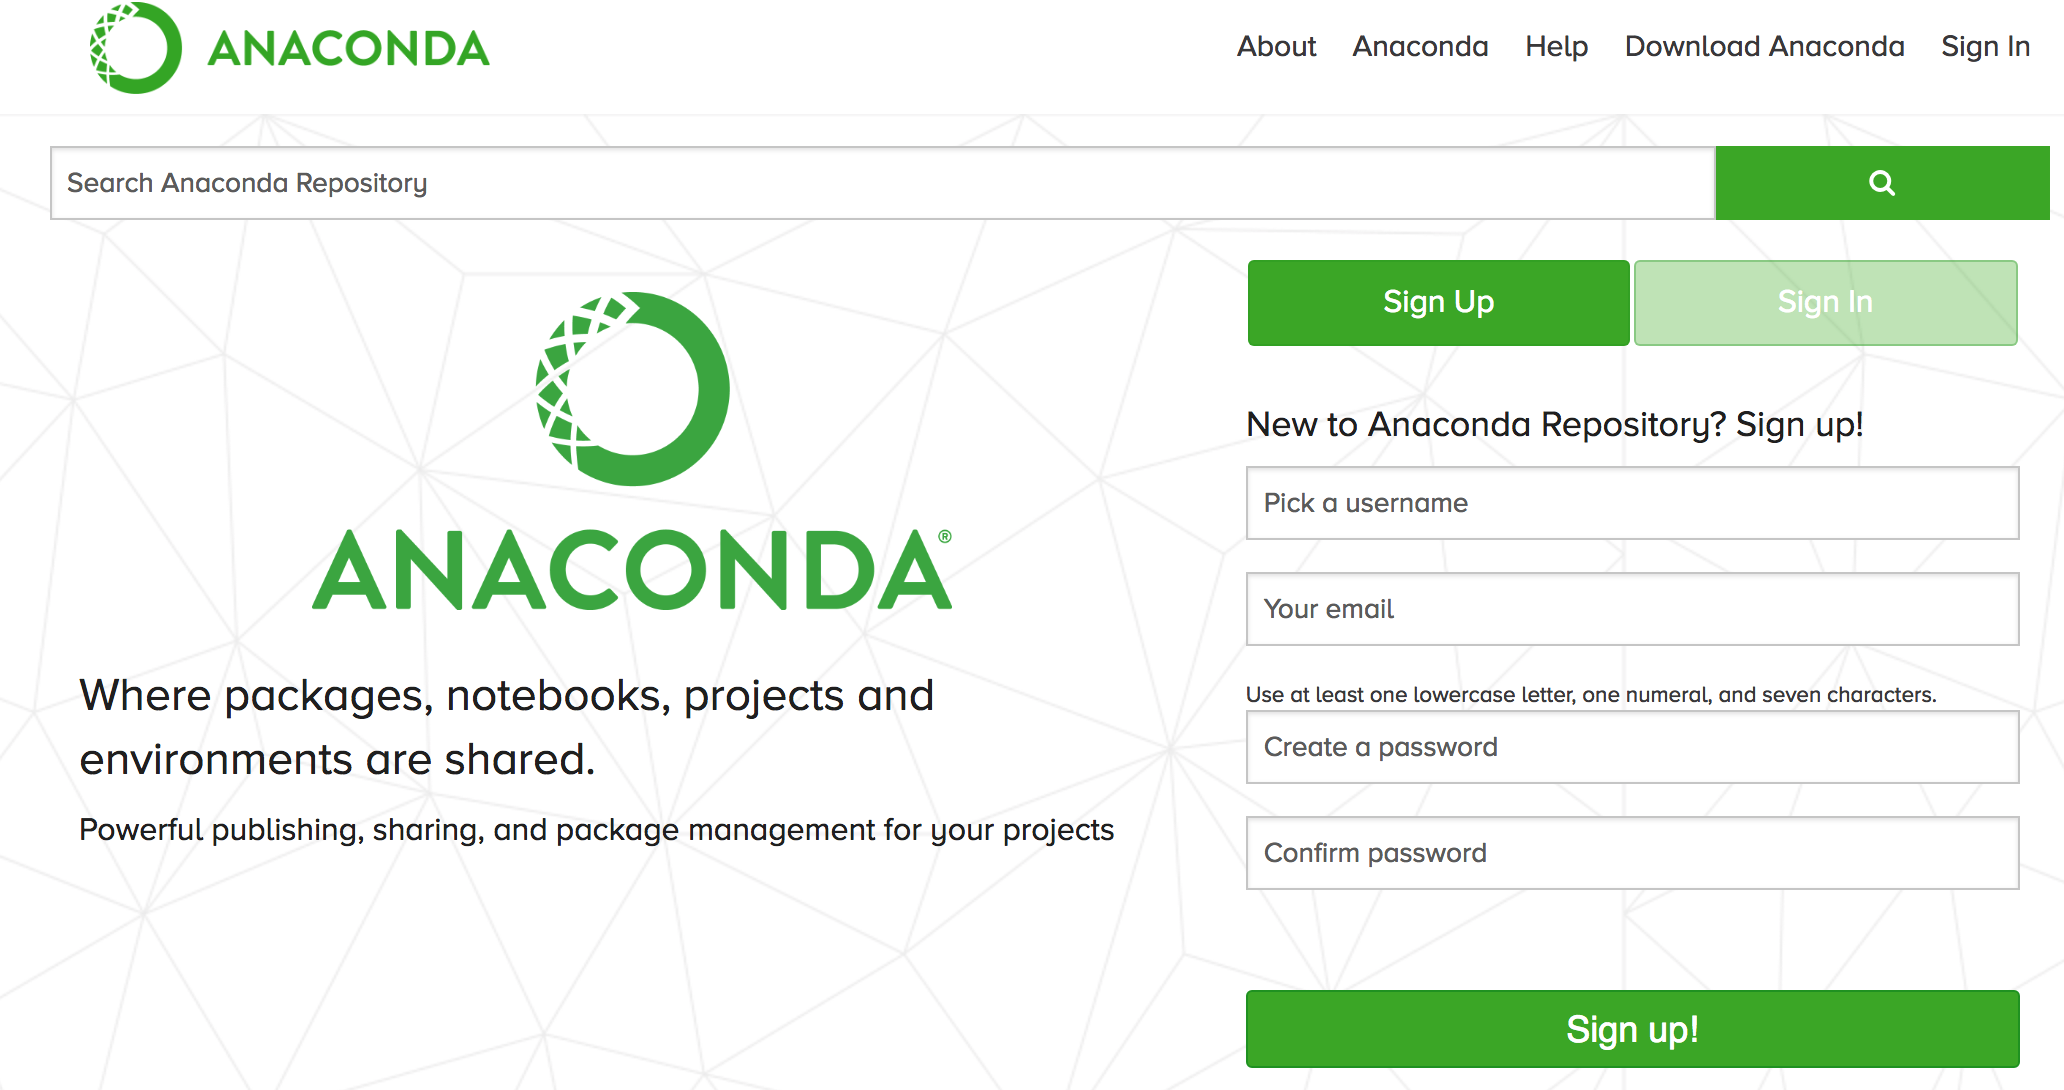 ../../_images/anaconda-repo-start.png